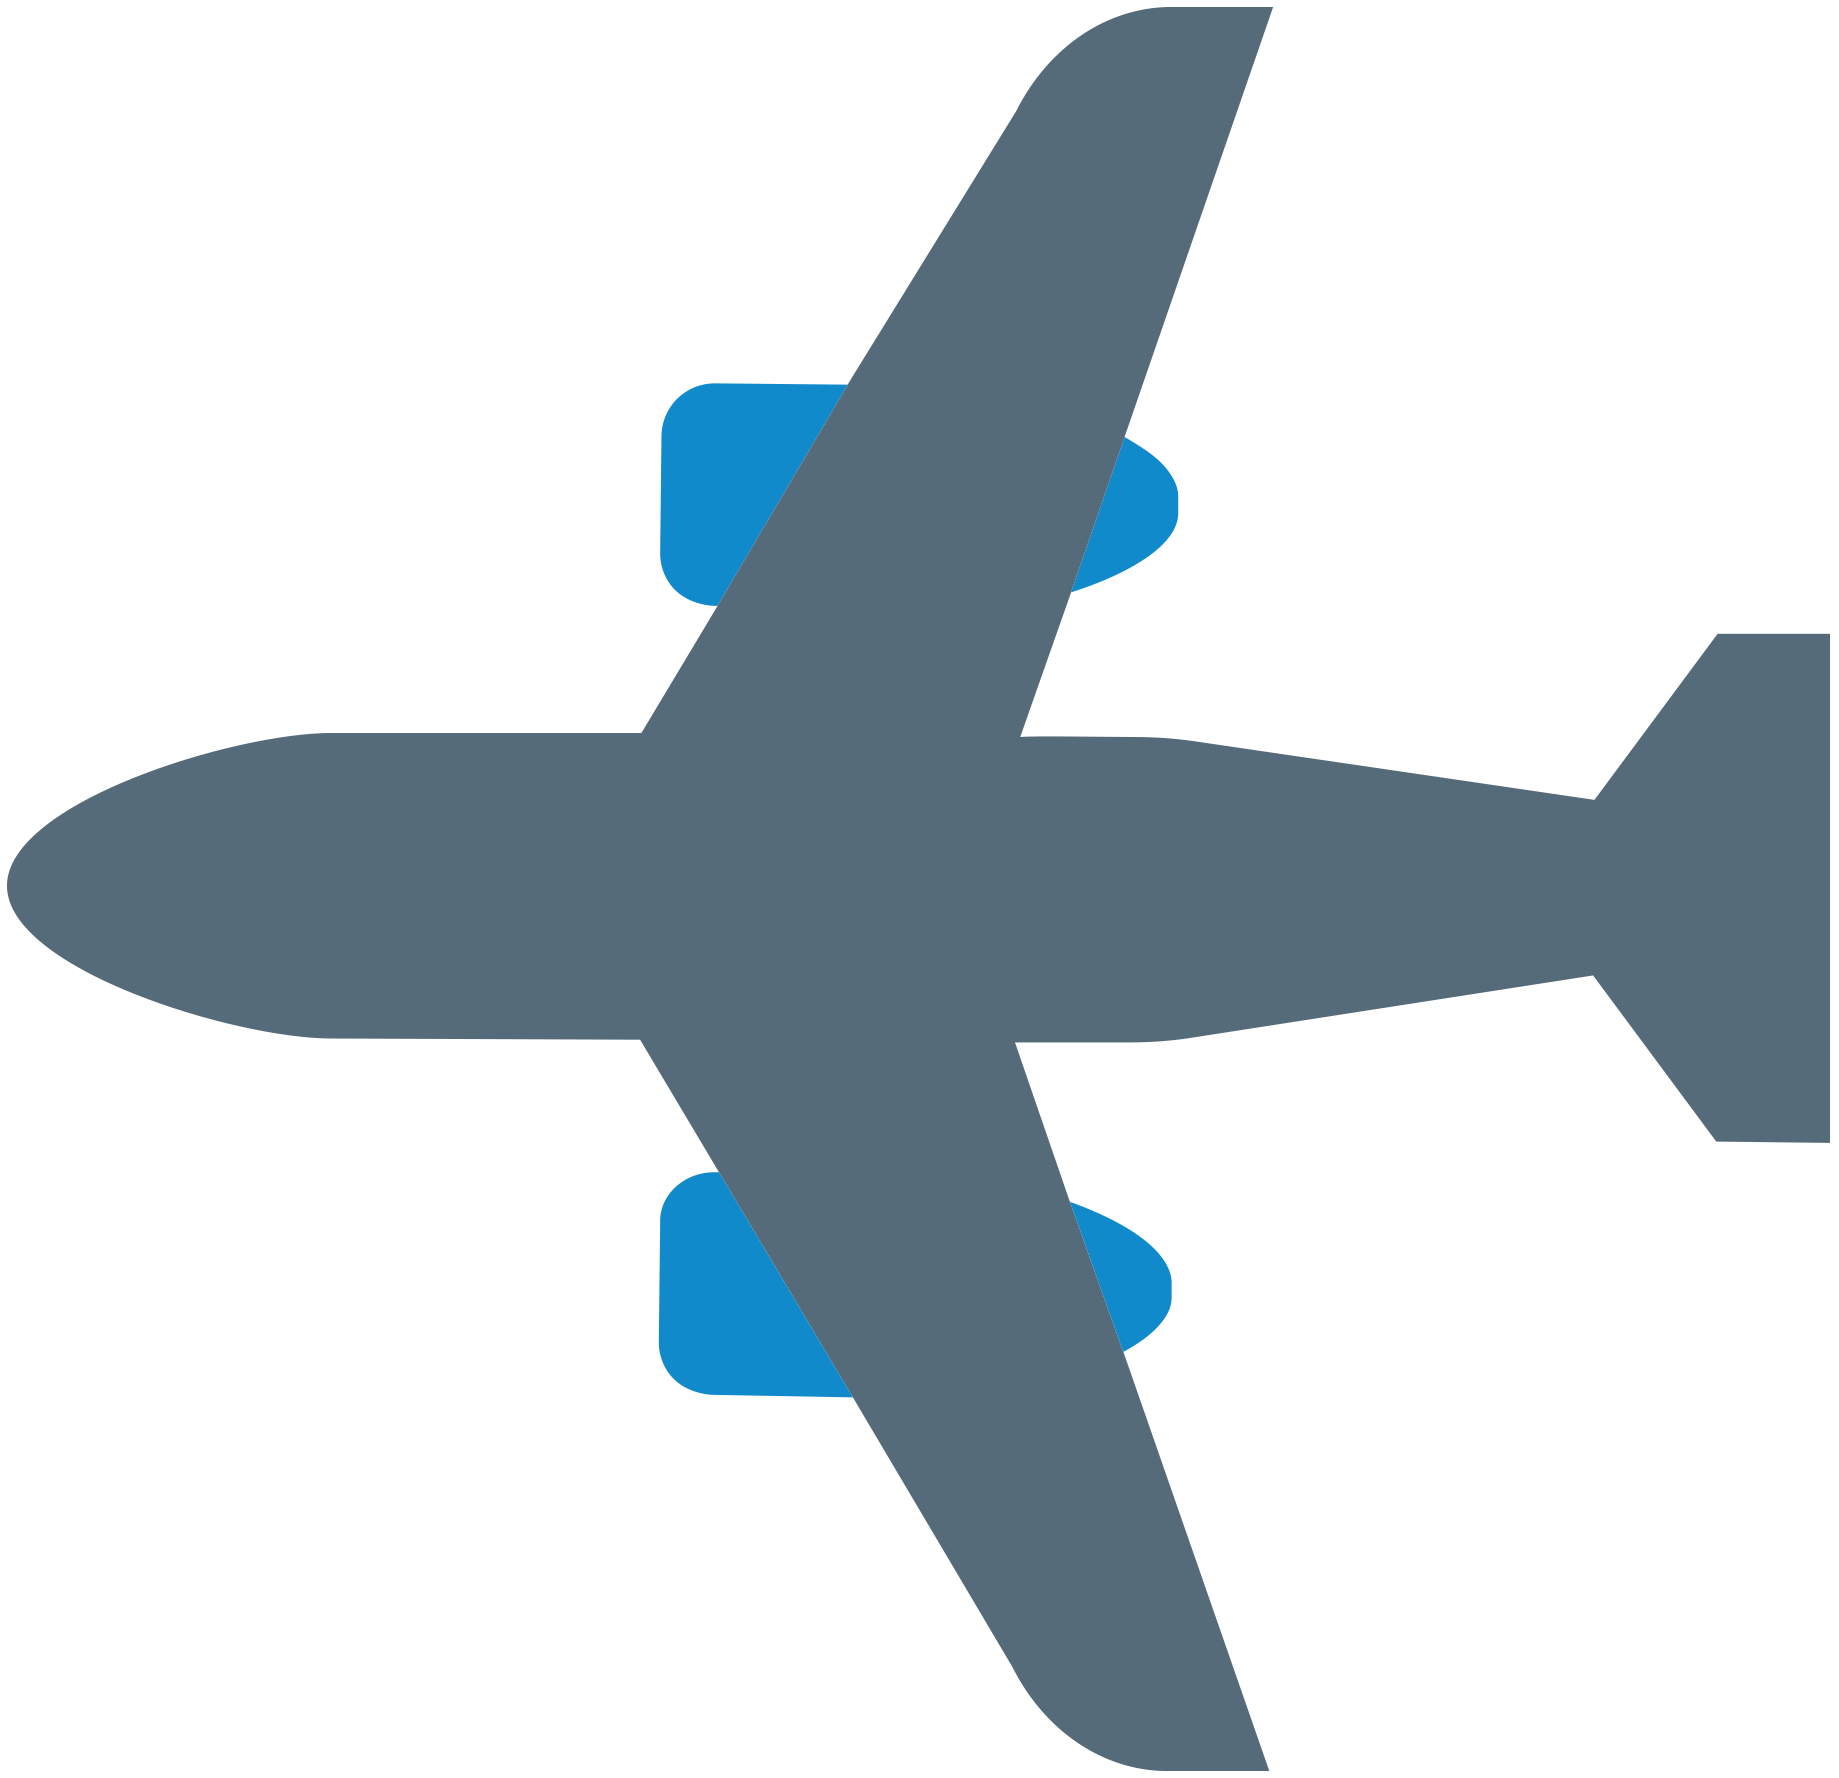 Wing clipart airline wing. Skynrg services